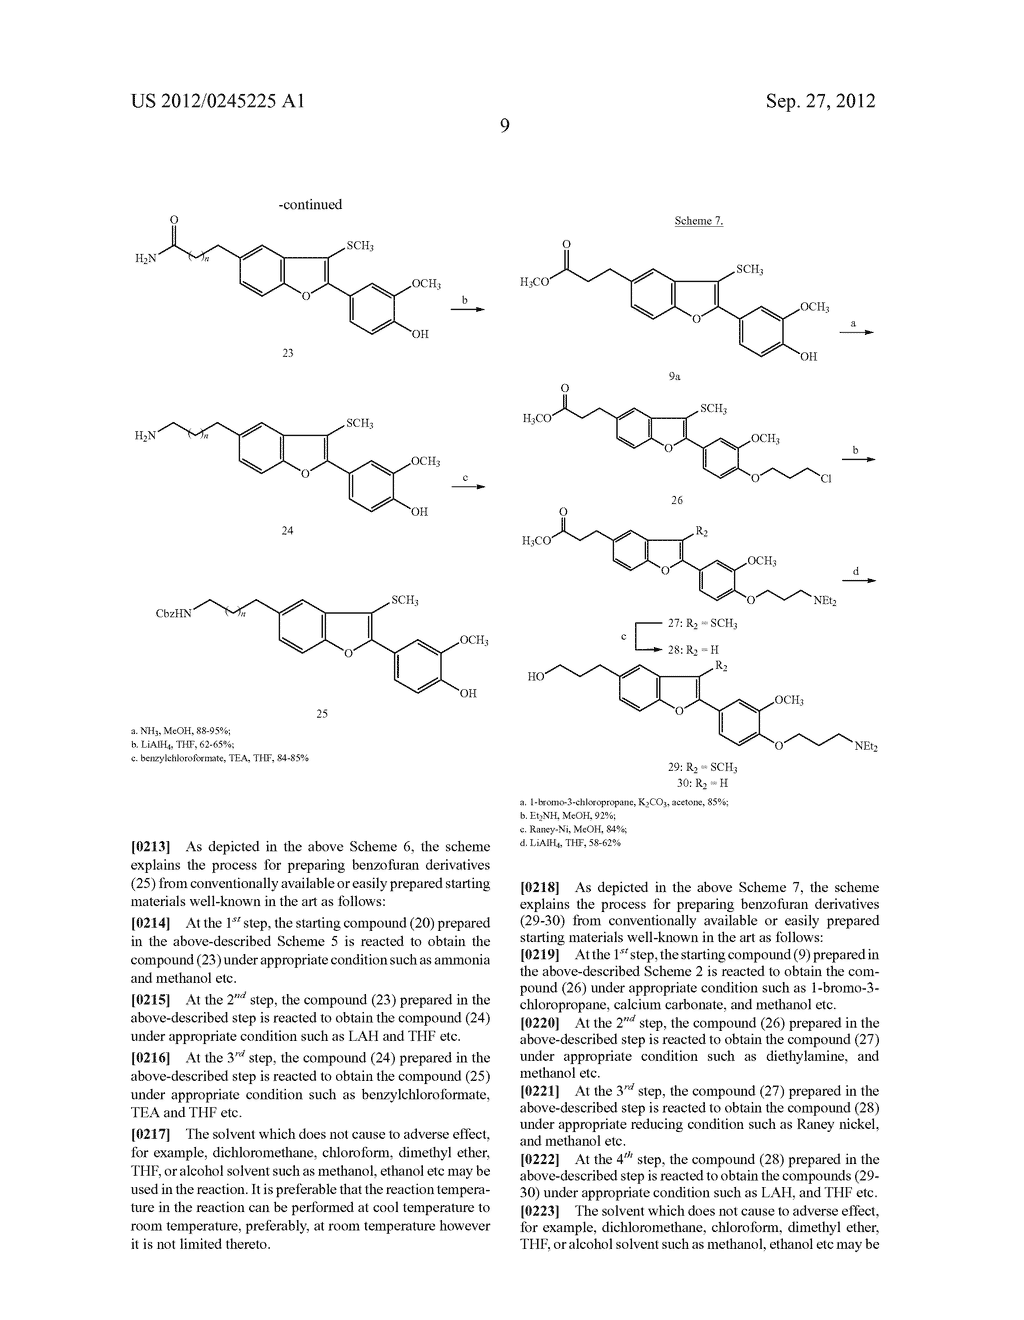 NOVEL BENZOFURAN TYPE DERIVATIVES, A COMPOSITION COMPRISING THE SAME FOR     TREATING OR PREVENTING COGNITIVE DYSFUNCTION AND THE USE THEREOF - diagram, schematic, and image 25